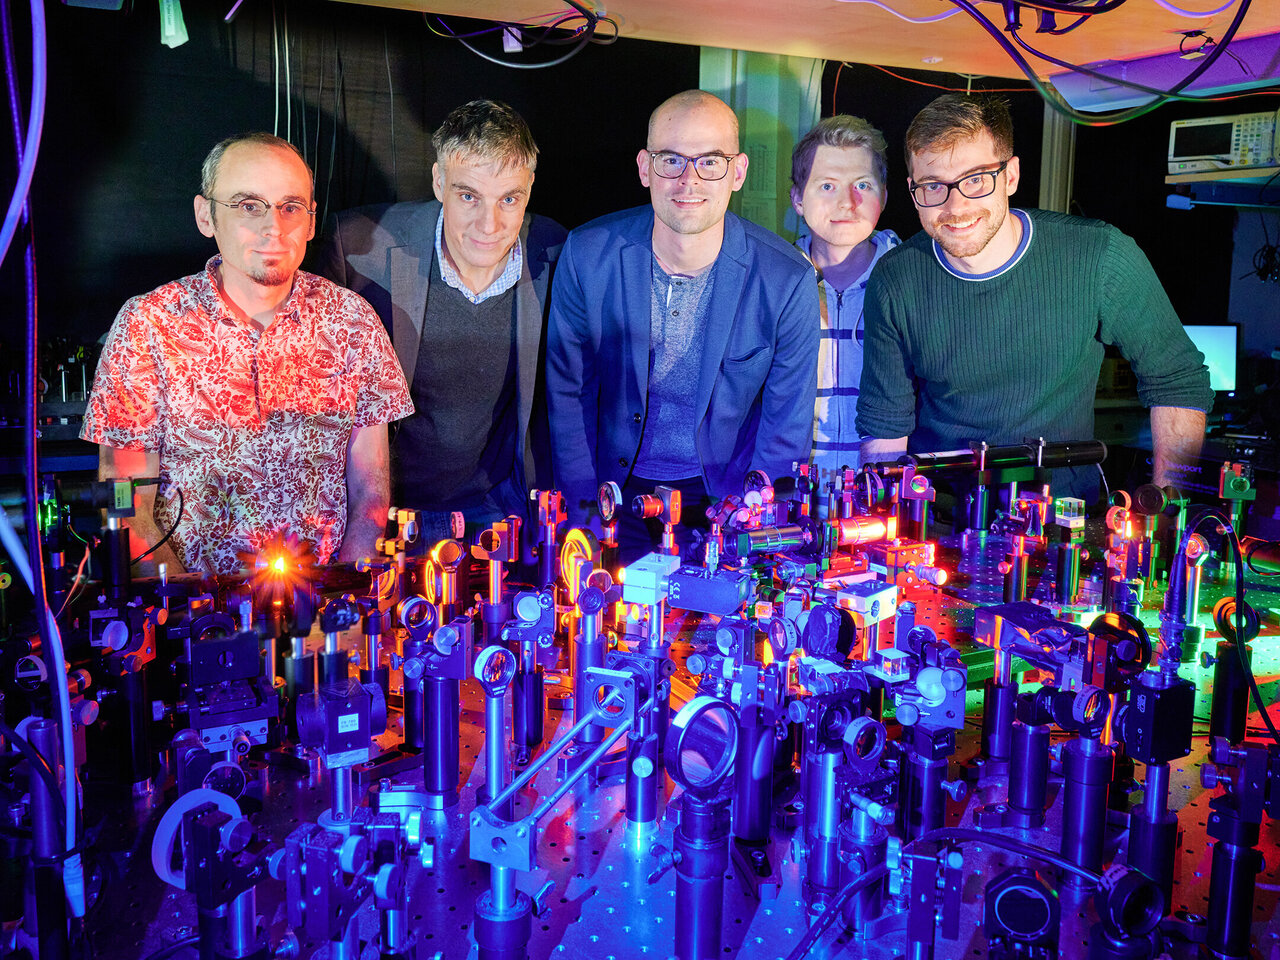 Physicists irreversibly split photons by freezing them in a Bose-Einstein condensate